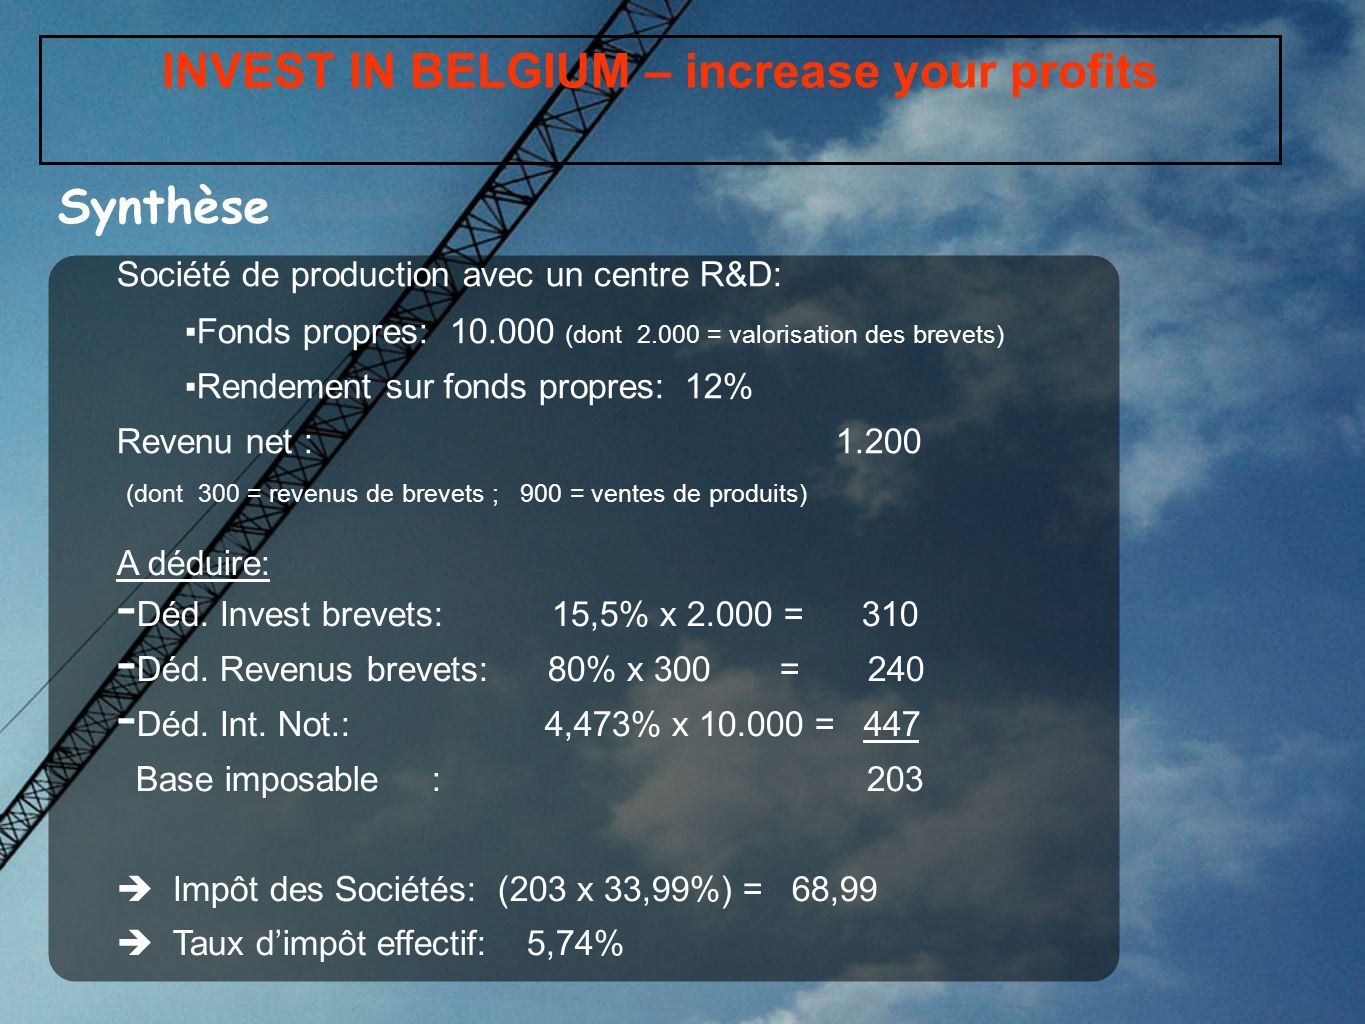 INVEST IN BELGIUM – increase your profits